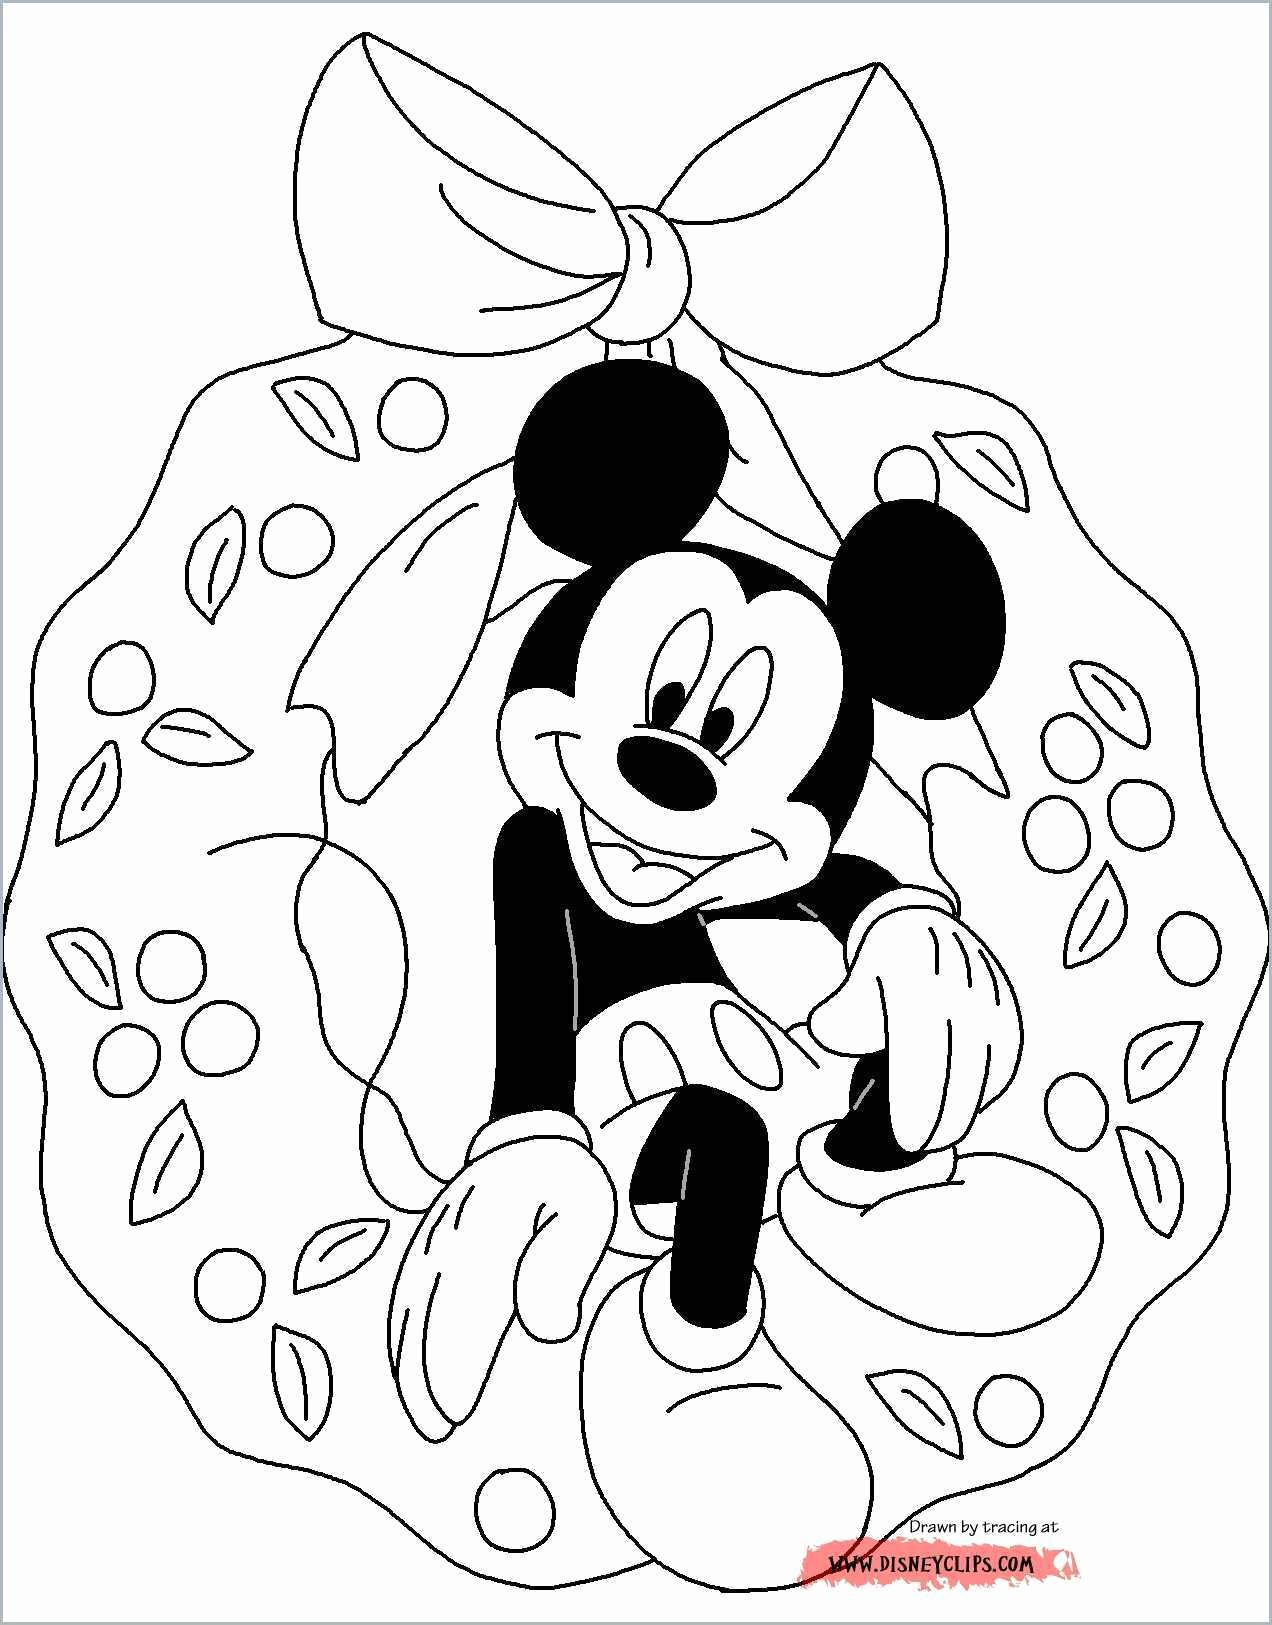 Disney Christmas Coloring Pages For Kids Printable Cartoon Coloring Pages Mickey Coloring Pages Christmas Coloring Books [ 1625 x 1272 Pixel ]